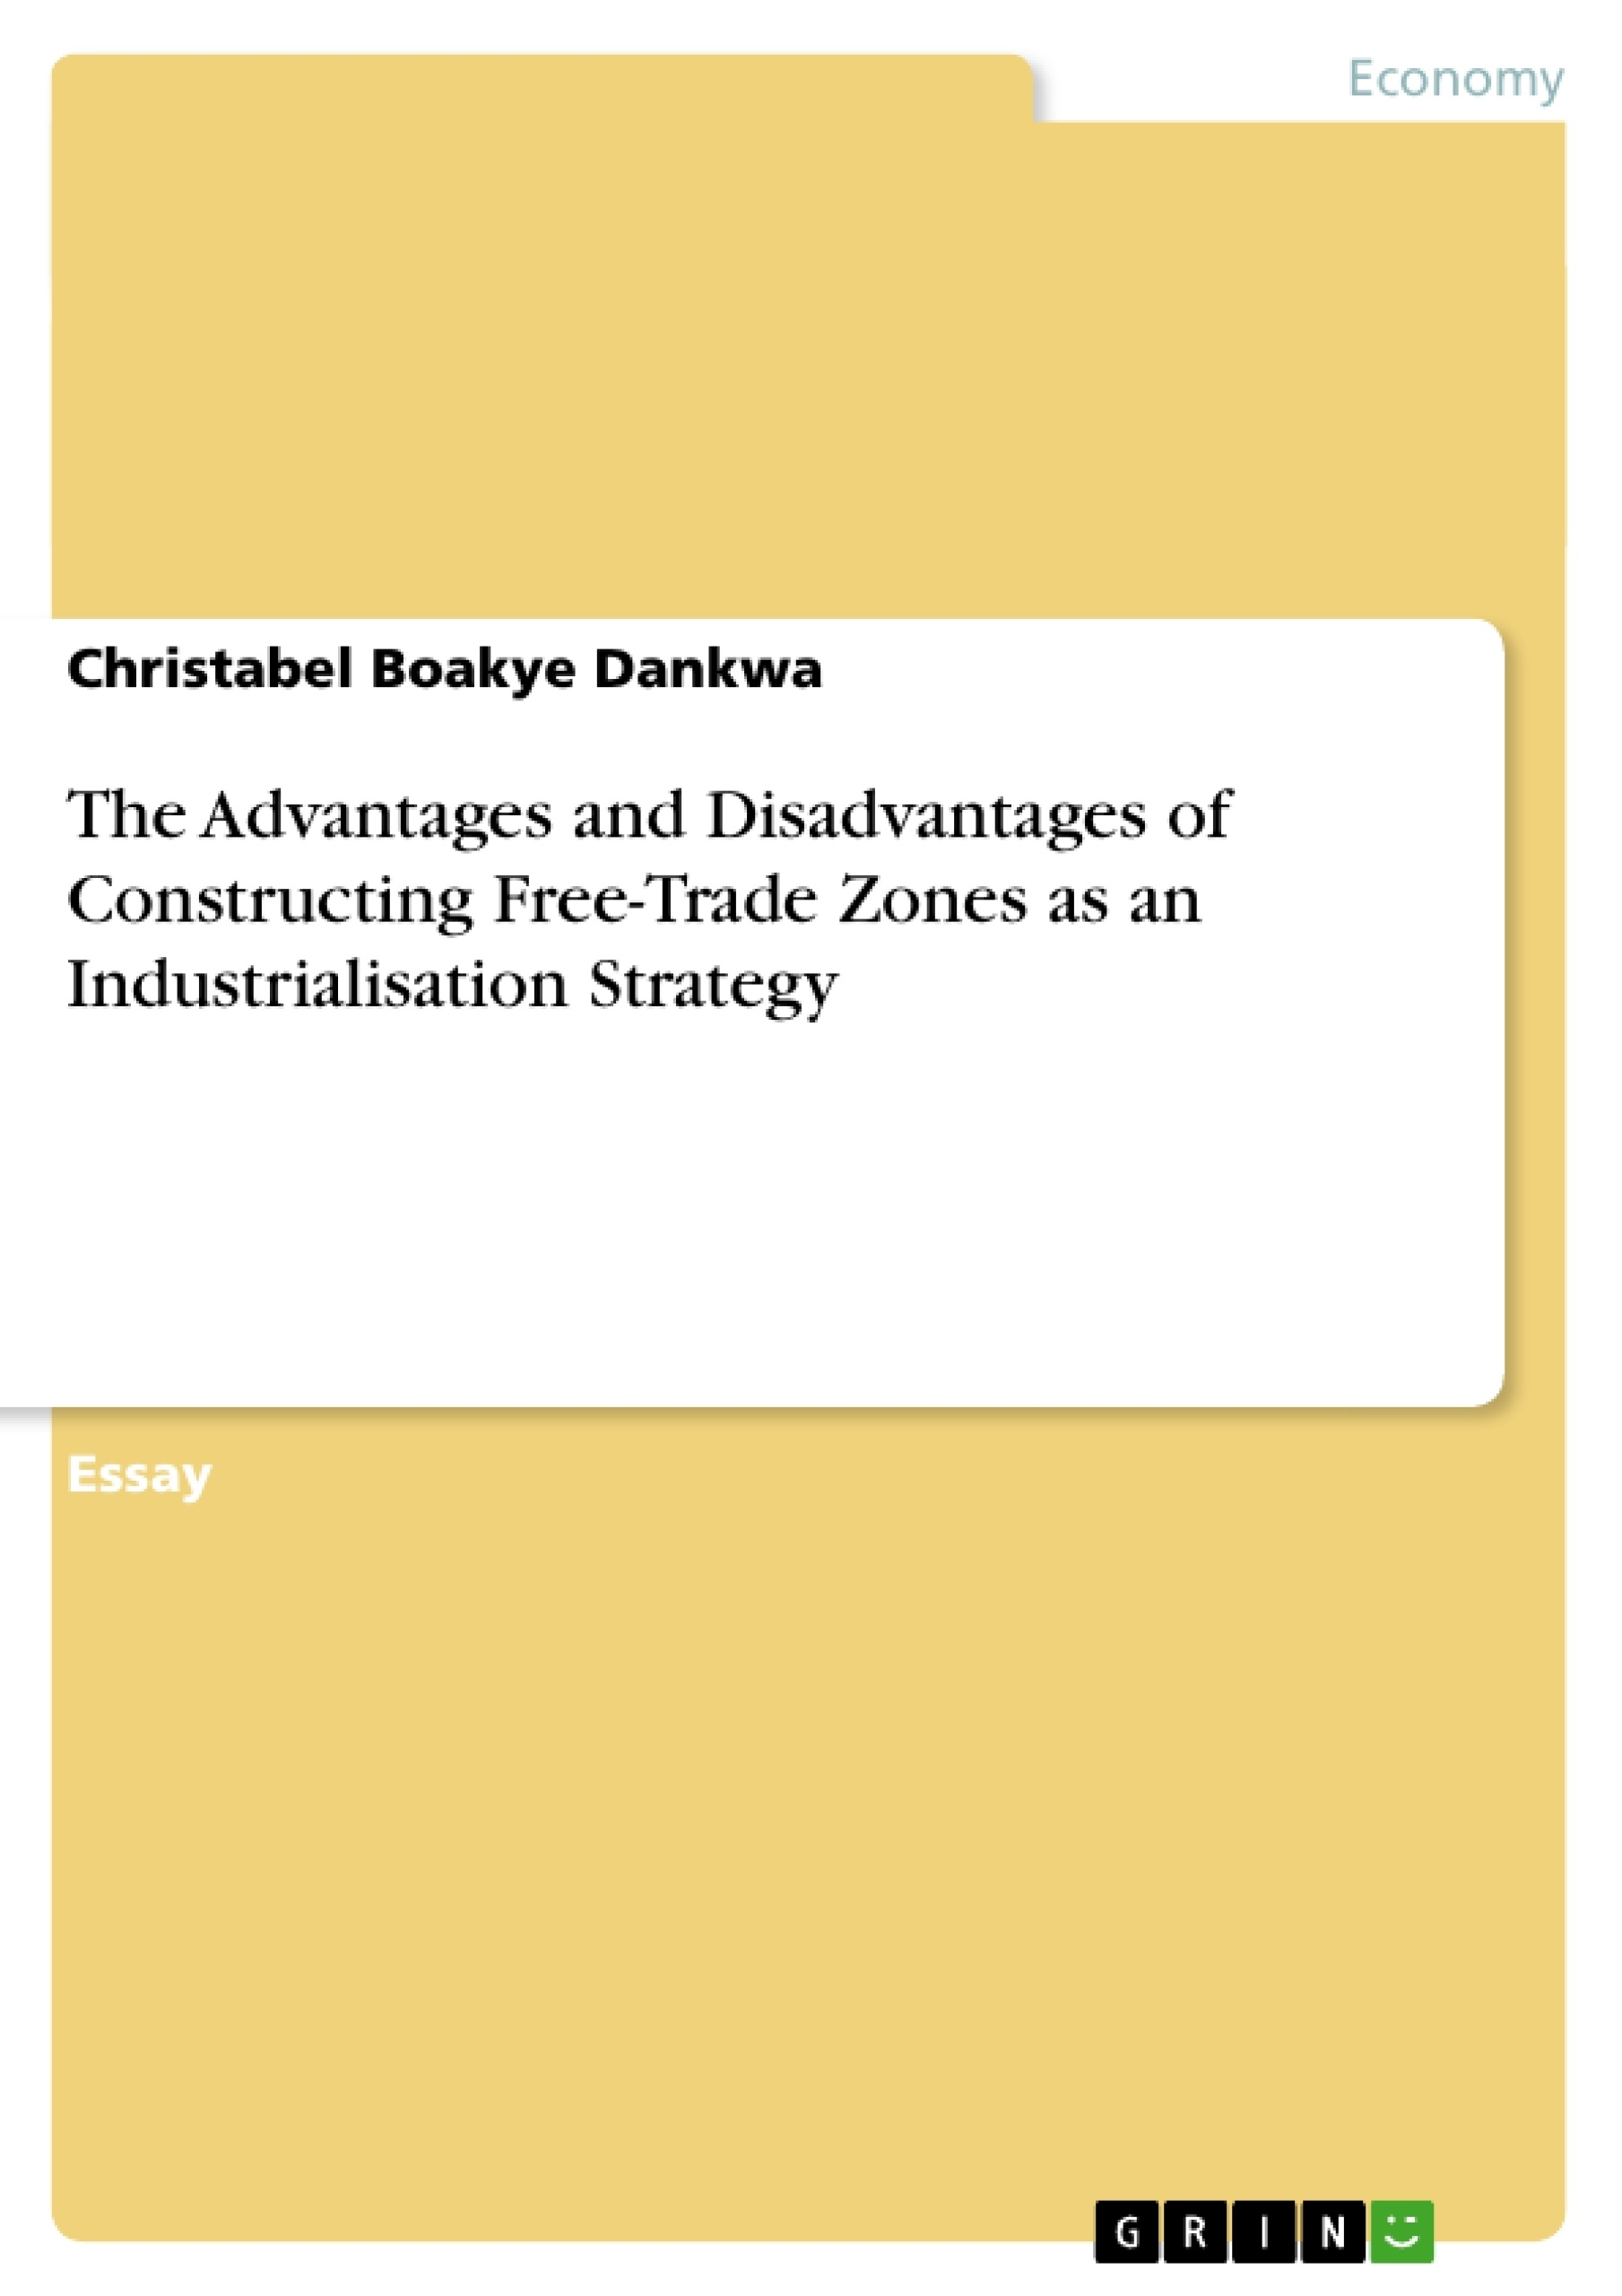 The Advantages And Disadvantages Of Constructing Free Trade Zones